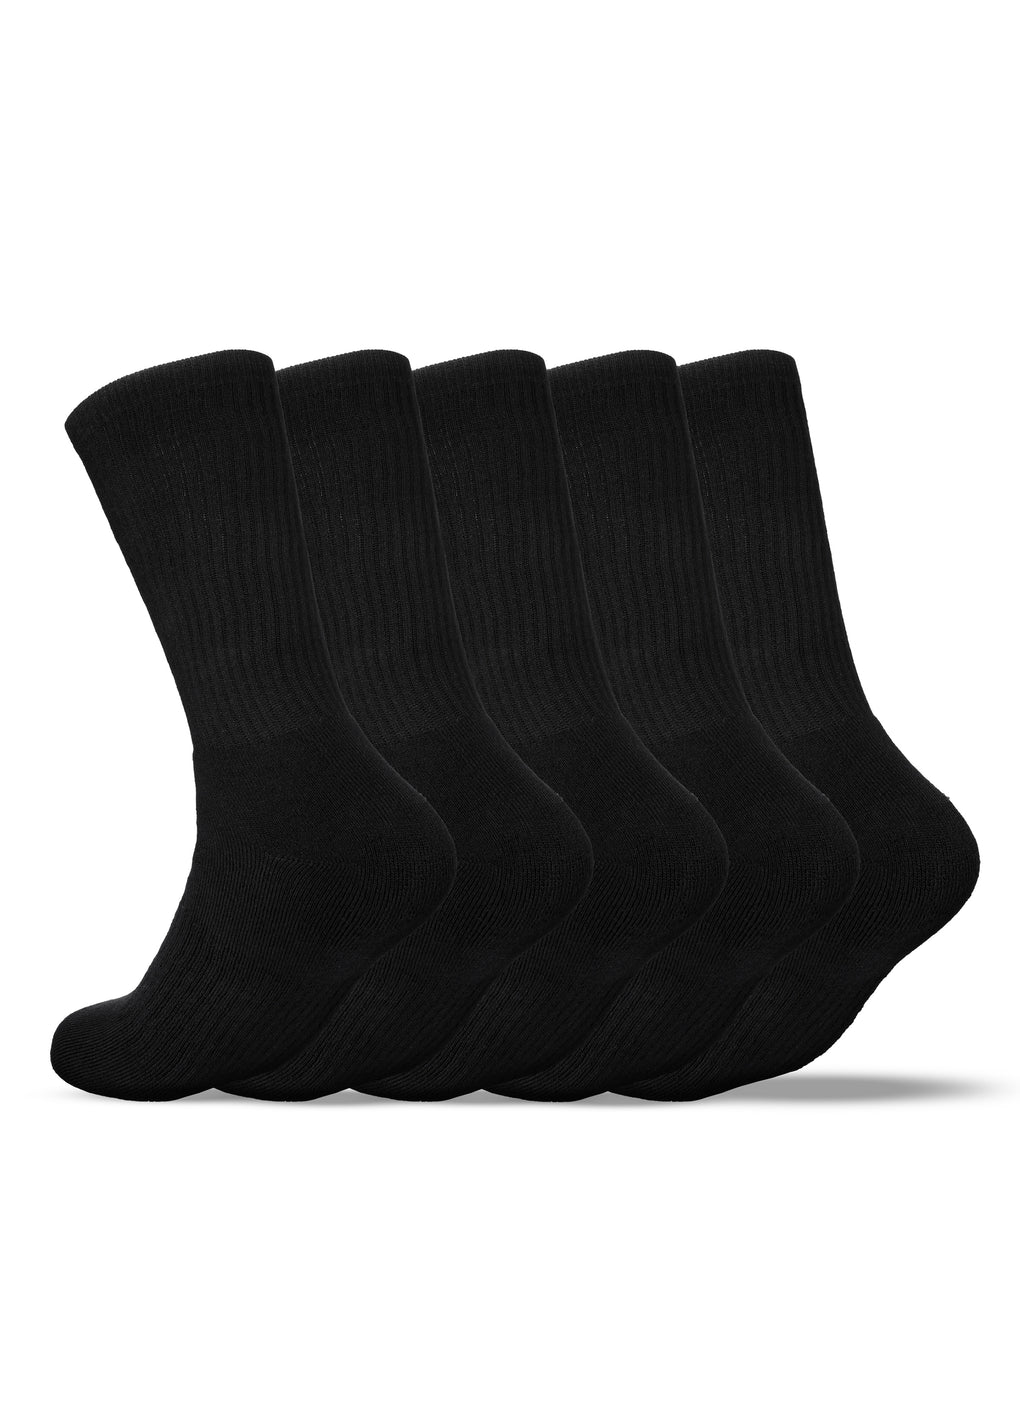 Conduct Bamboo Socks 5 Pack